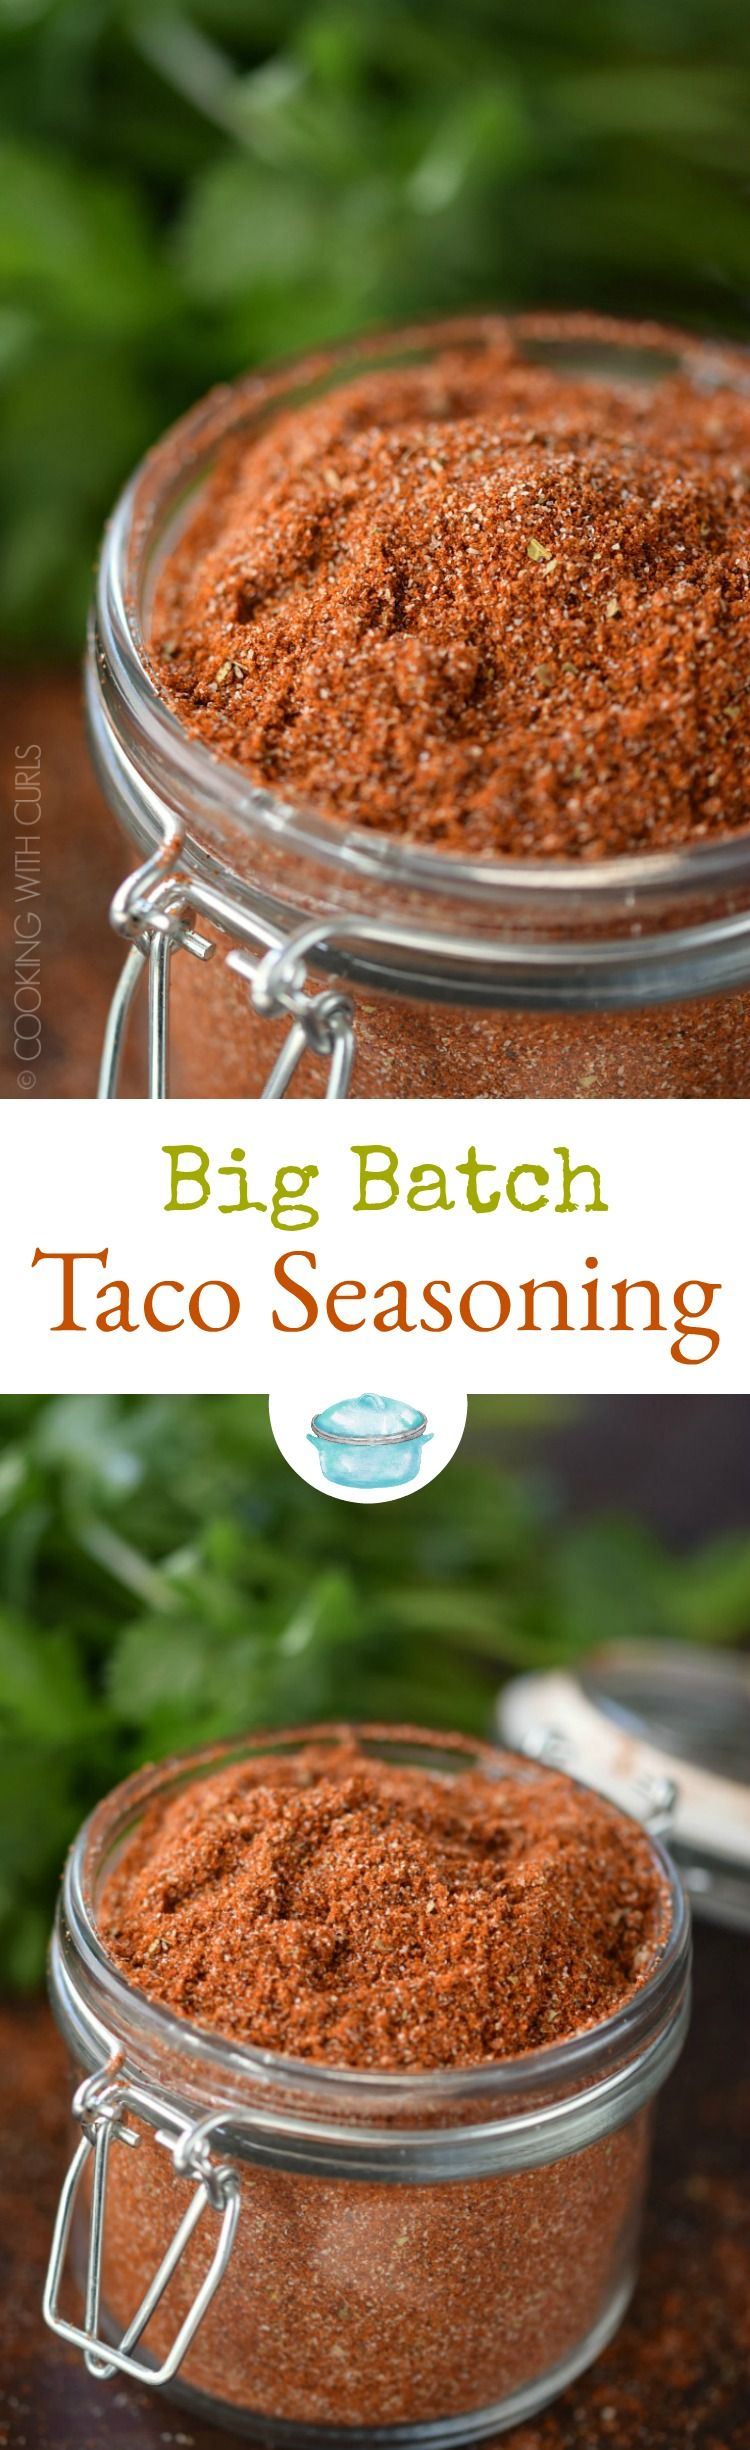 Taco Seasoning Recipe Cooking with Curls Recipes